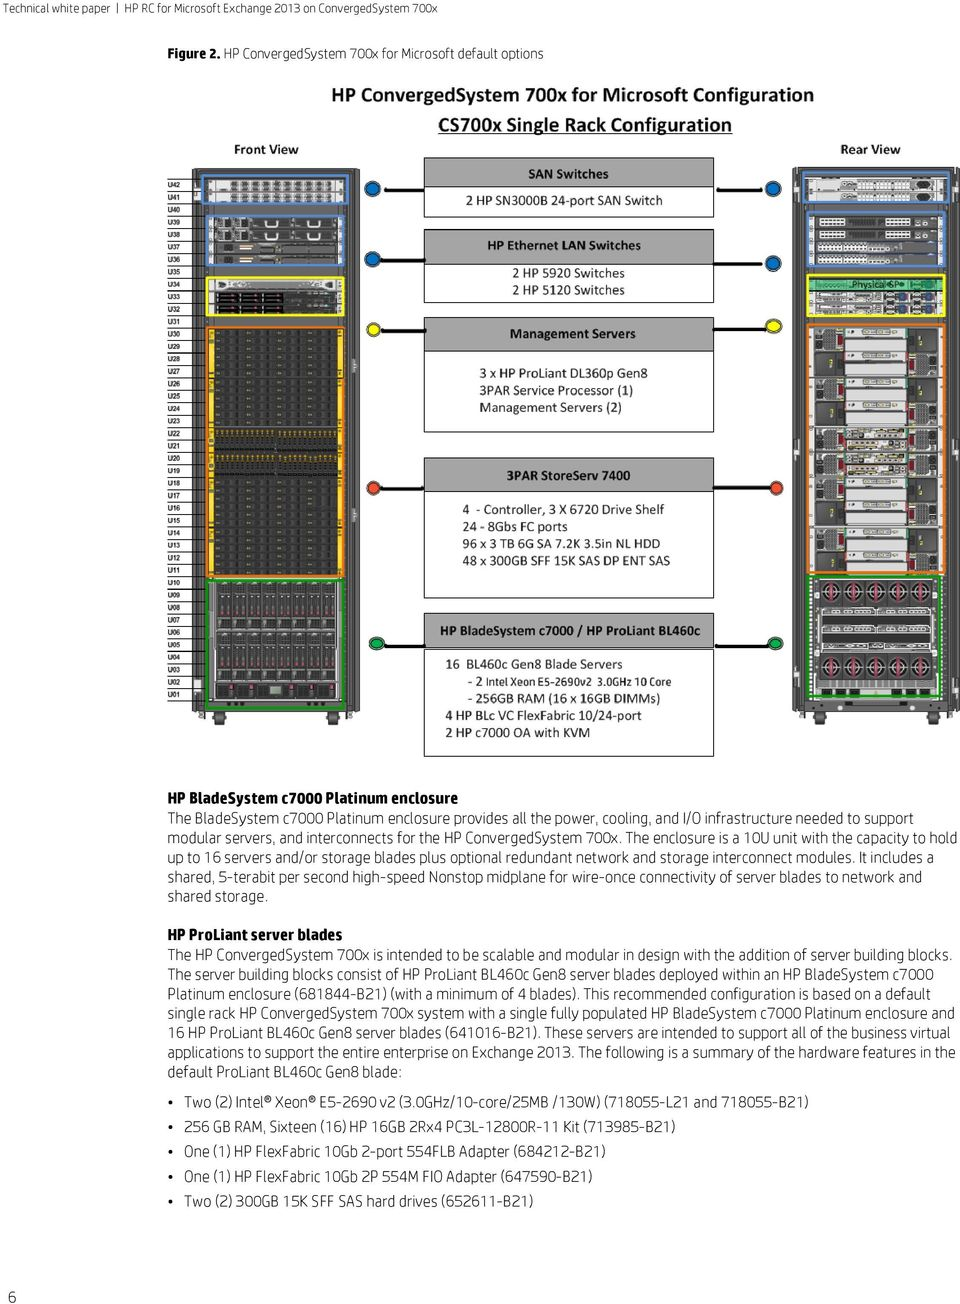 HP reference configuration for Microsoft Exchange 2013 on HP